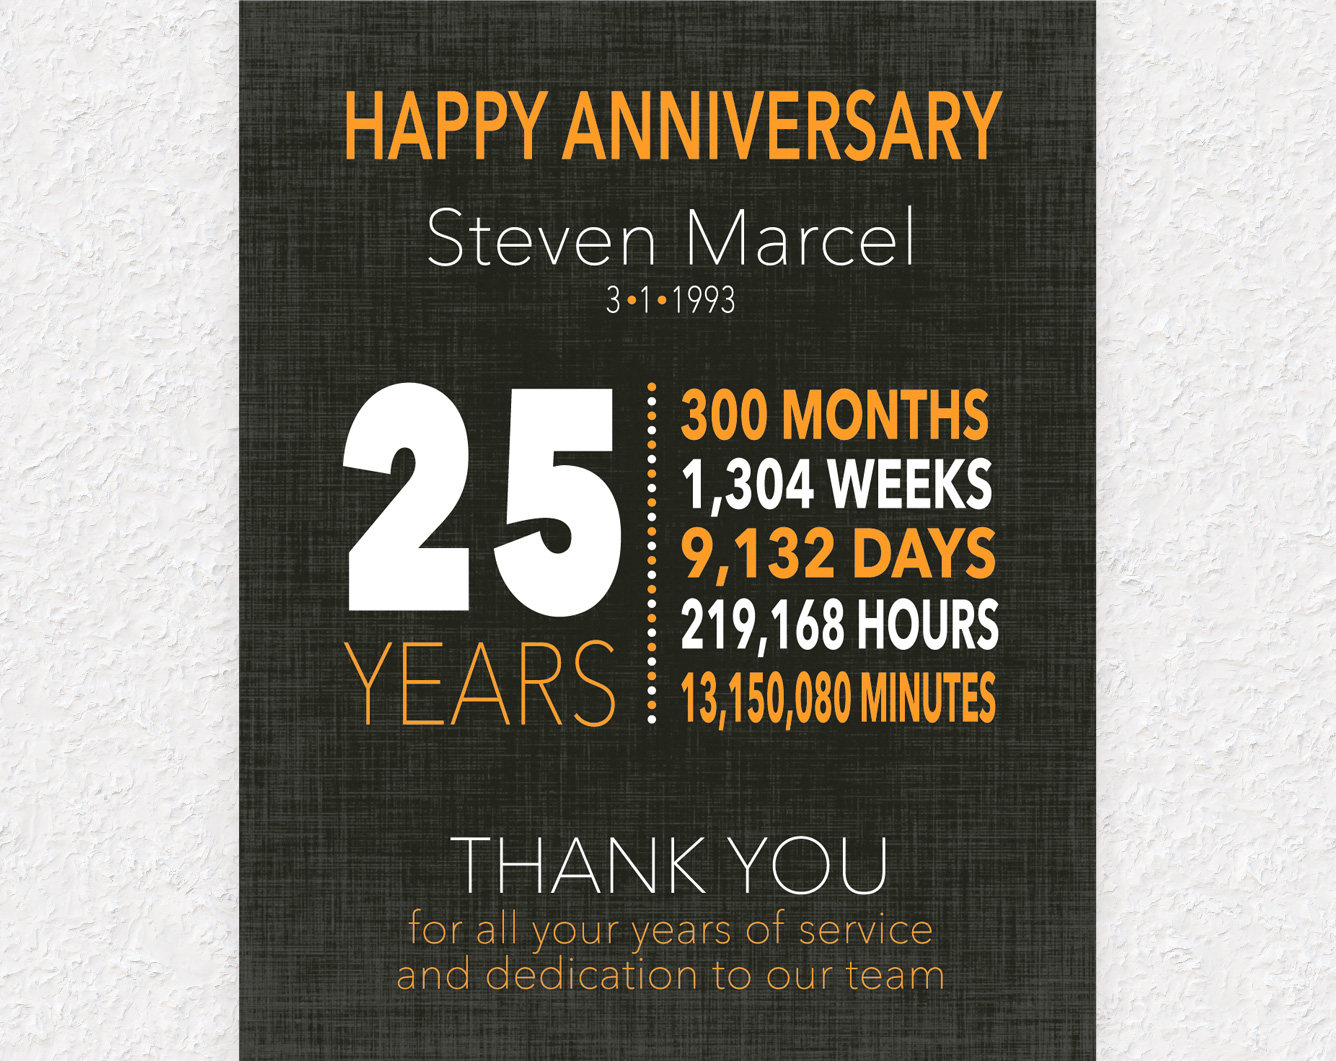 What Gift Do You Give For 25th Wedding Anniversary: 25 Year Work Anniversary Gift 10 Year Anniversary Gift